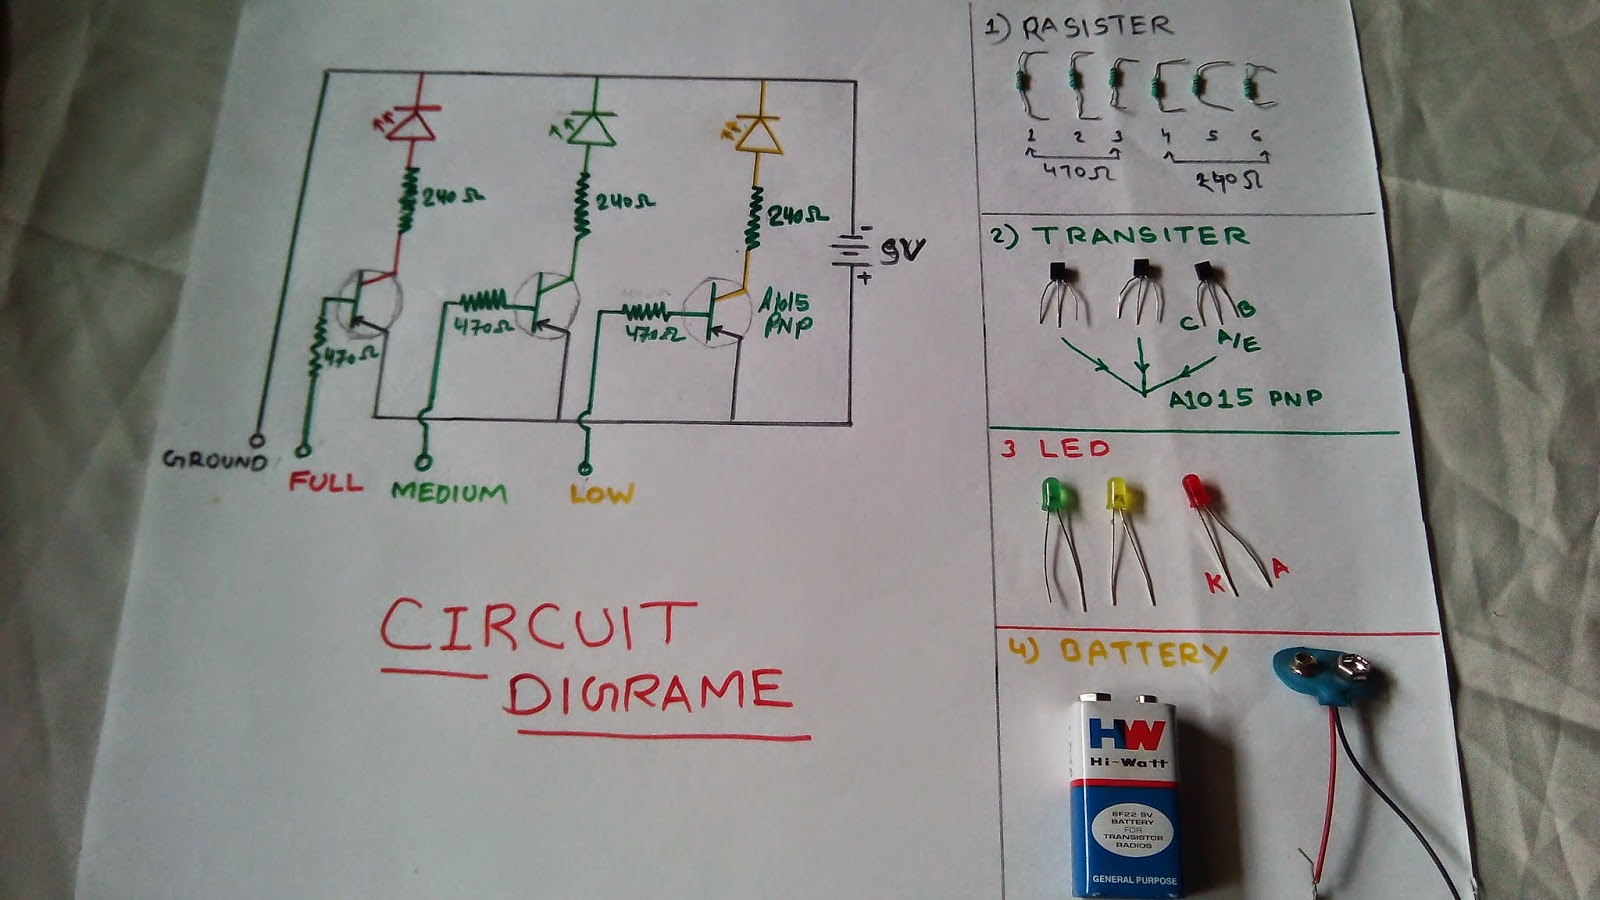 House Figure 4 Below Shows The Sms Home Alarm System Circuit Diagram